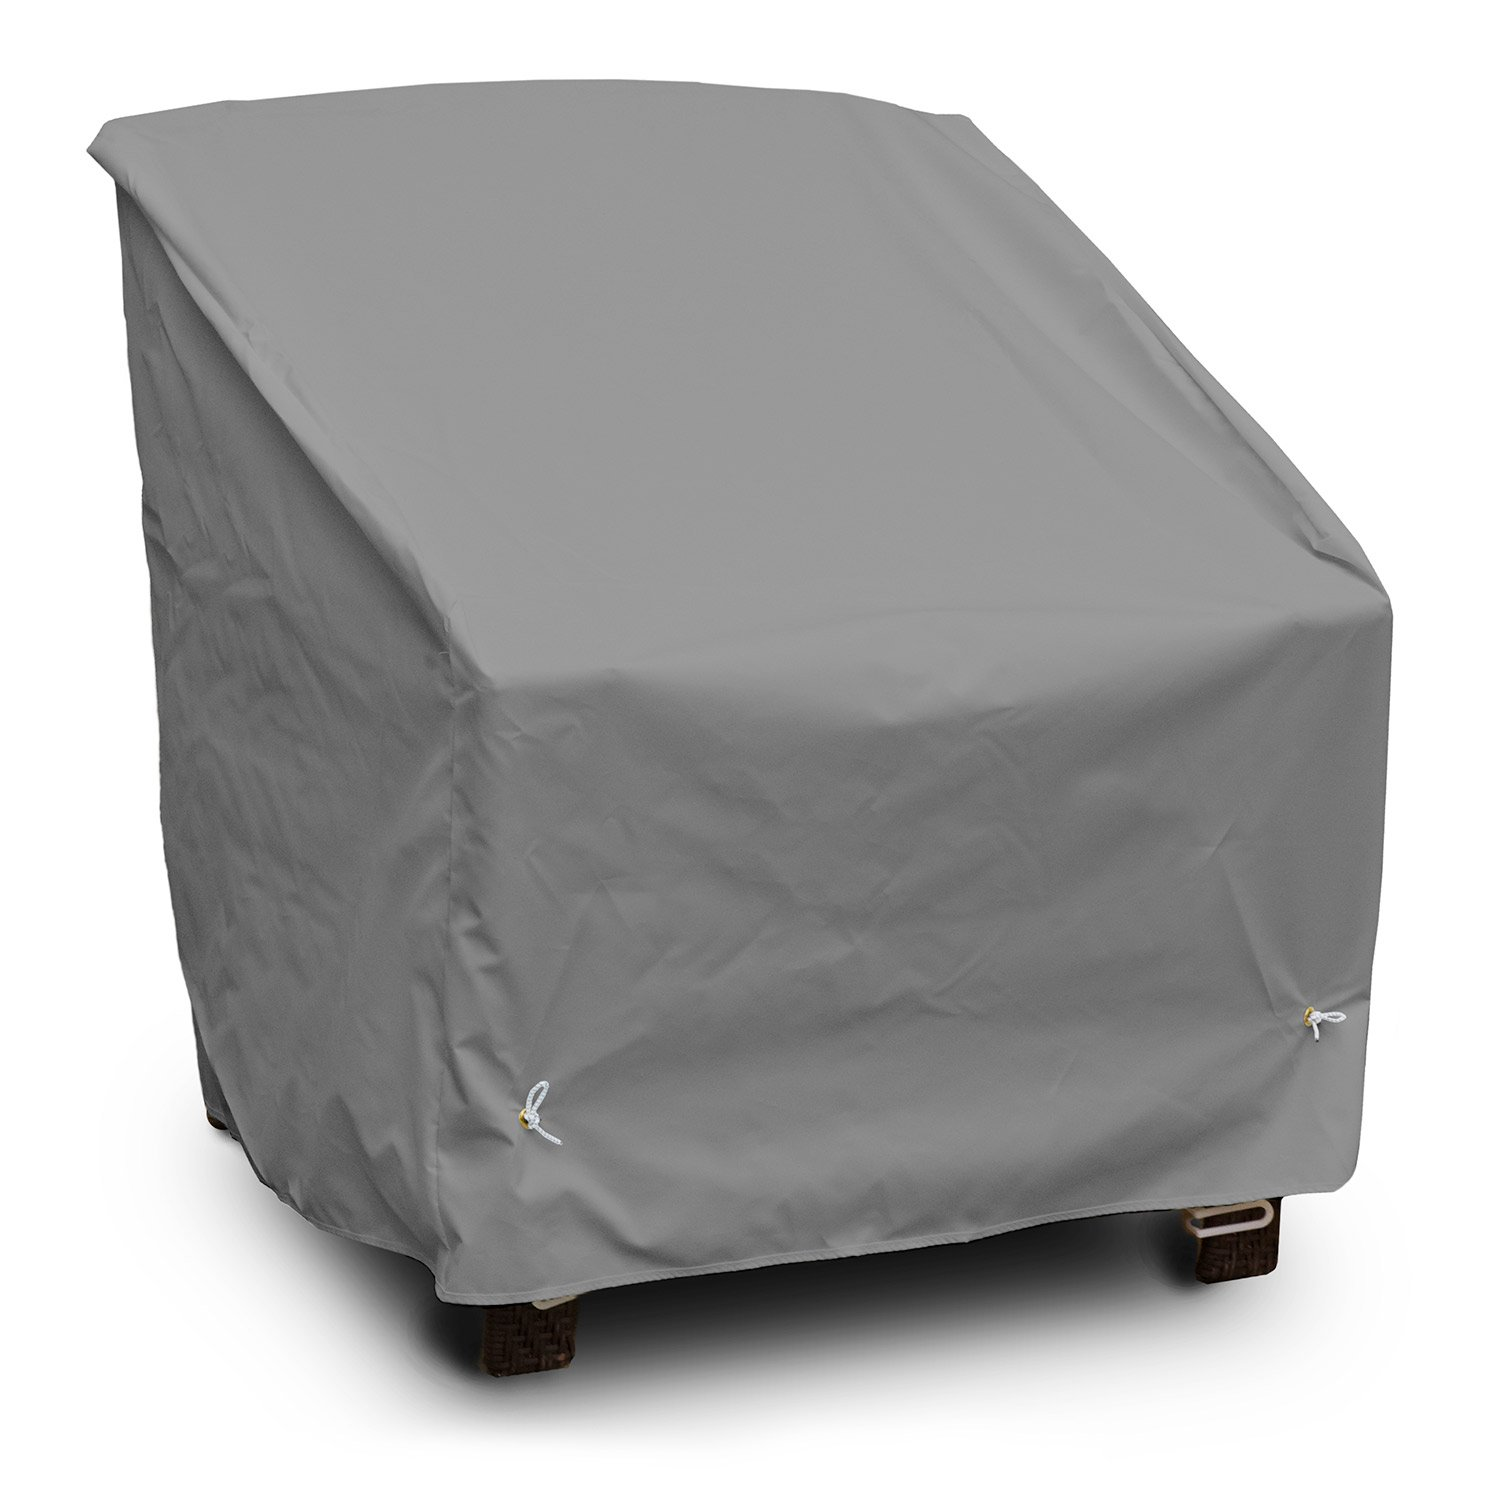 KoverRoos Weathermax 89302 Deep Seating Super Lounge Chair Cover, 43-Inch Width by 40-Inch Diameter by 31-Inch Height, Charcoal